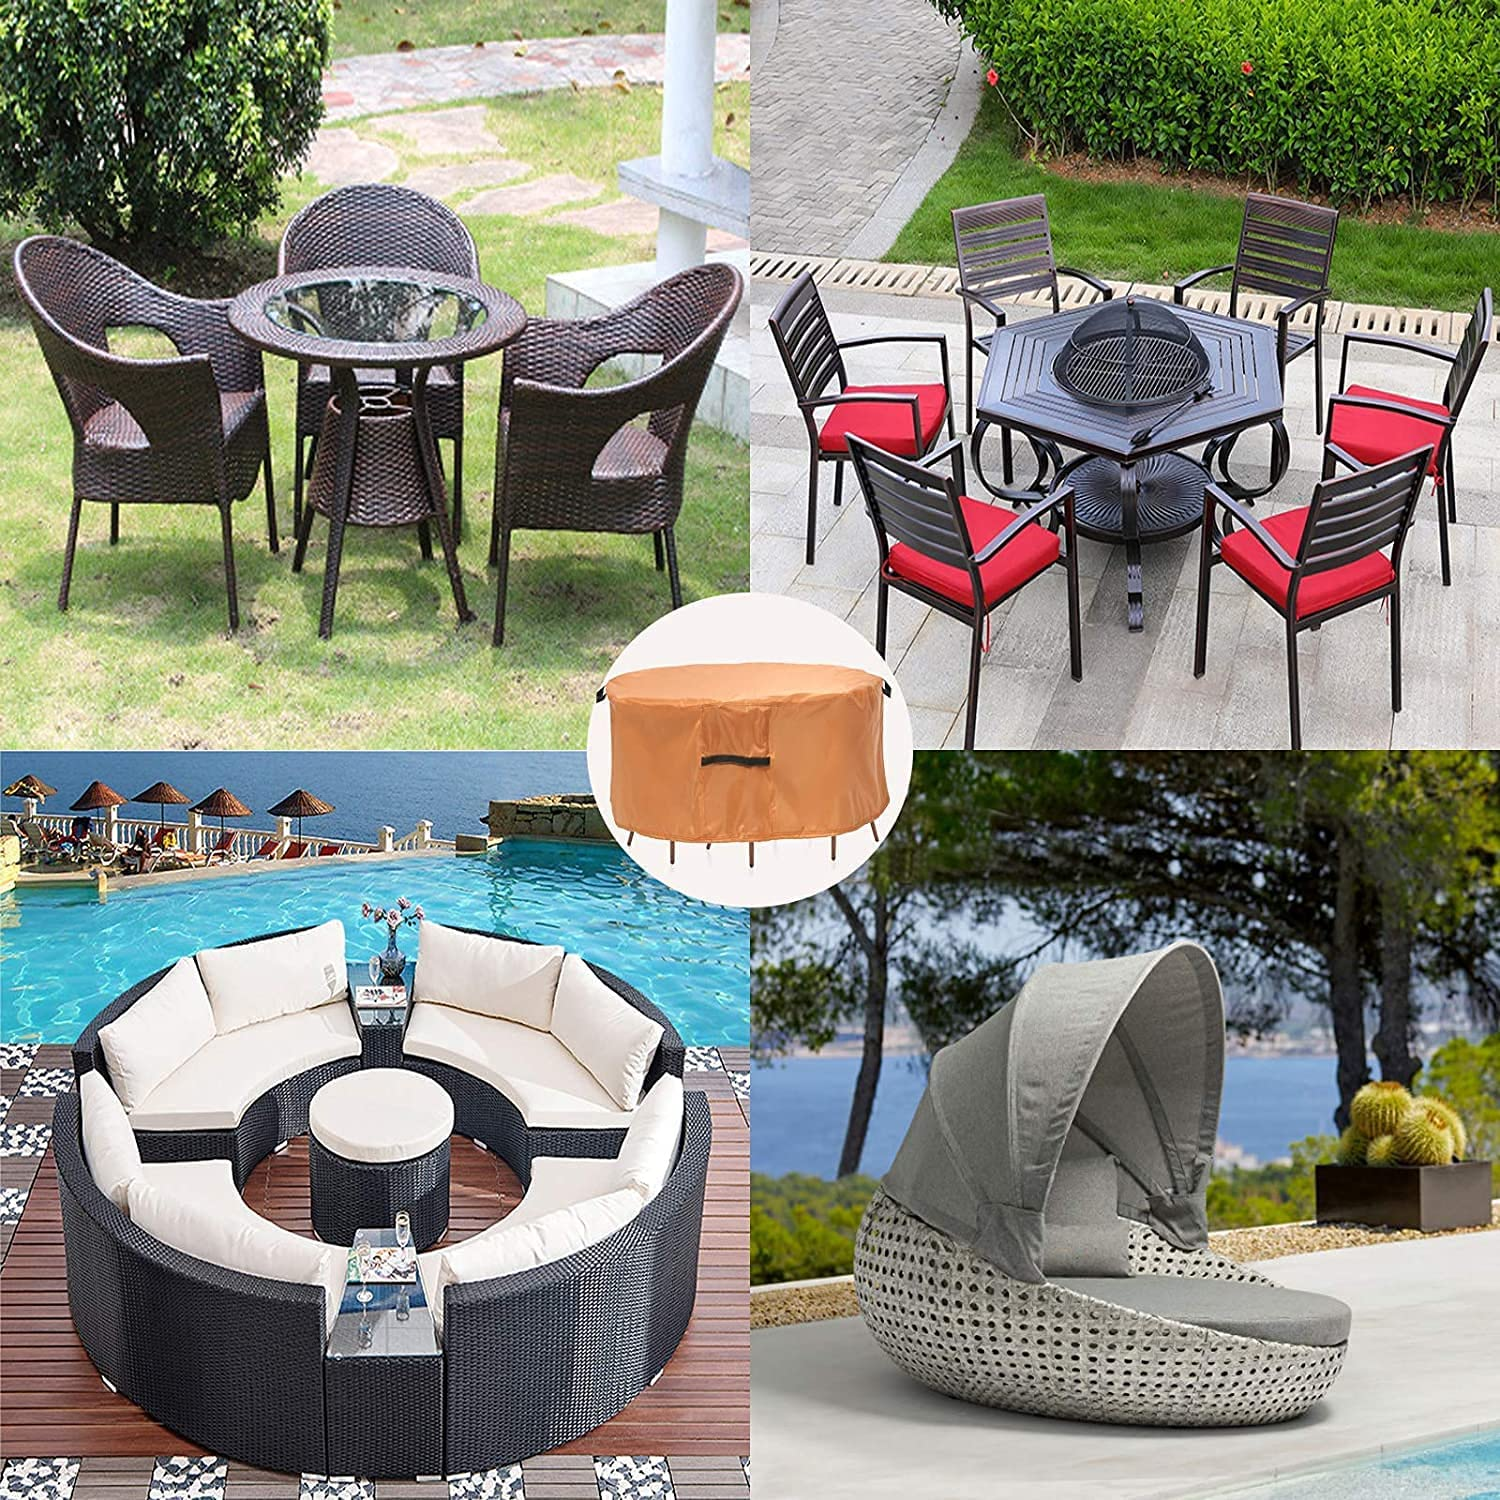 Buy Round Patio Furniture Covers, 9 Dia Outdoor Furniture Covers ...